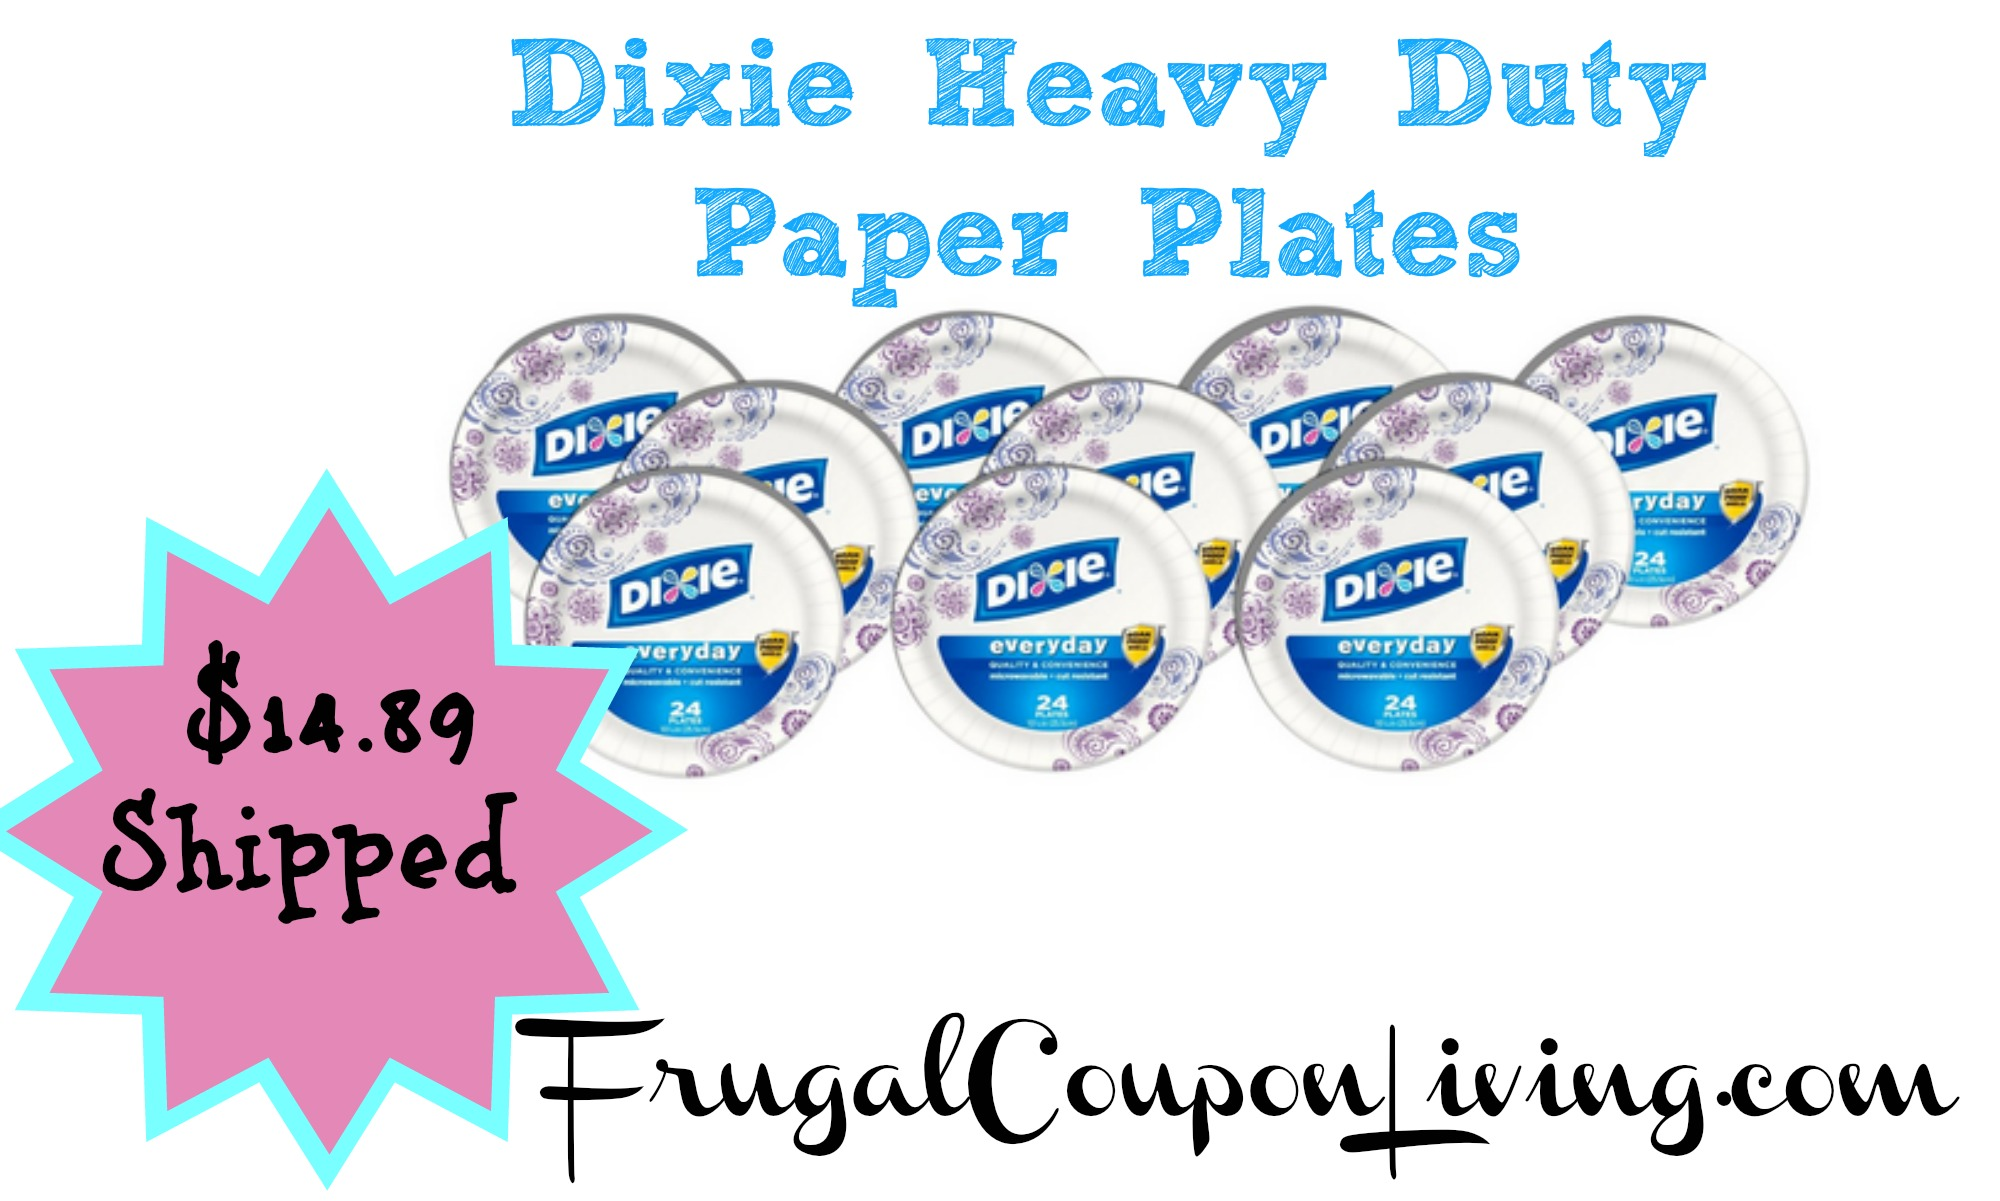 Dixie paper plates coupons 2018 / Iphone 5 contract deals uk